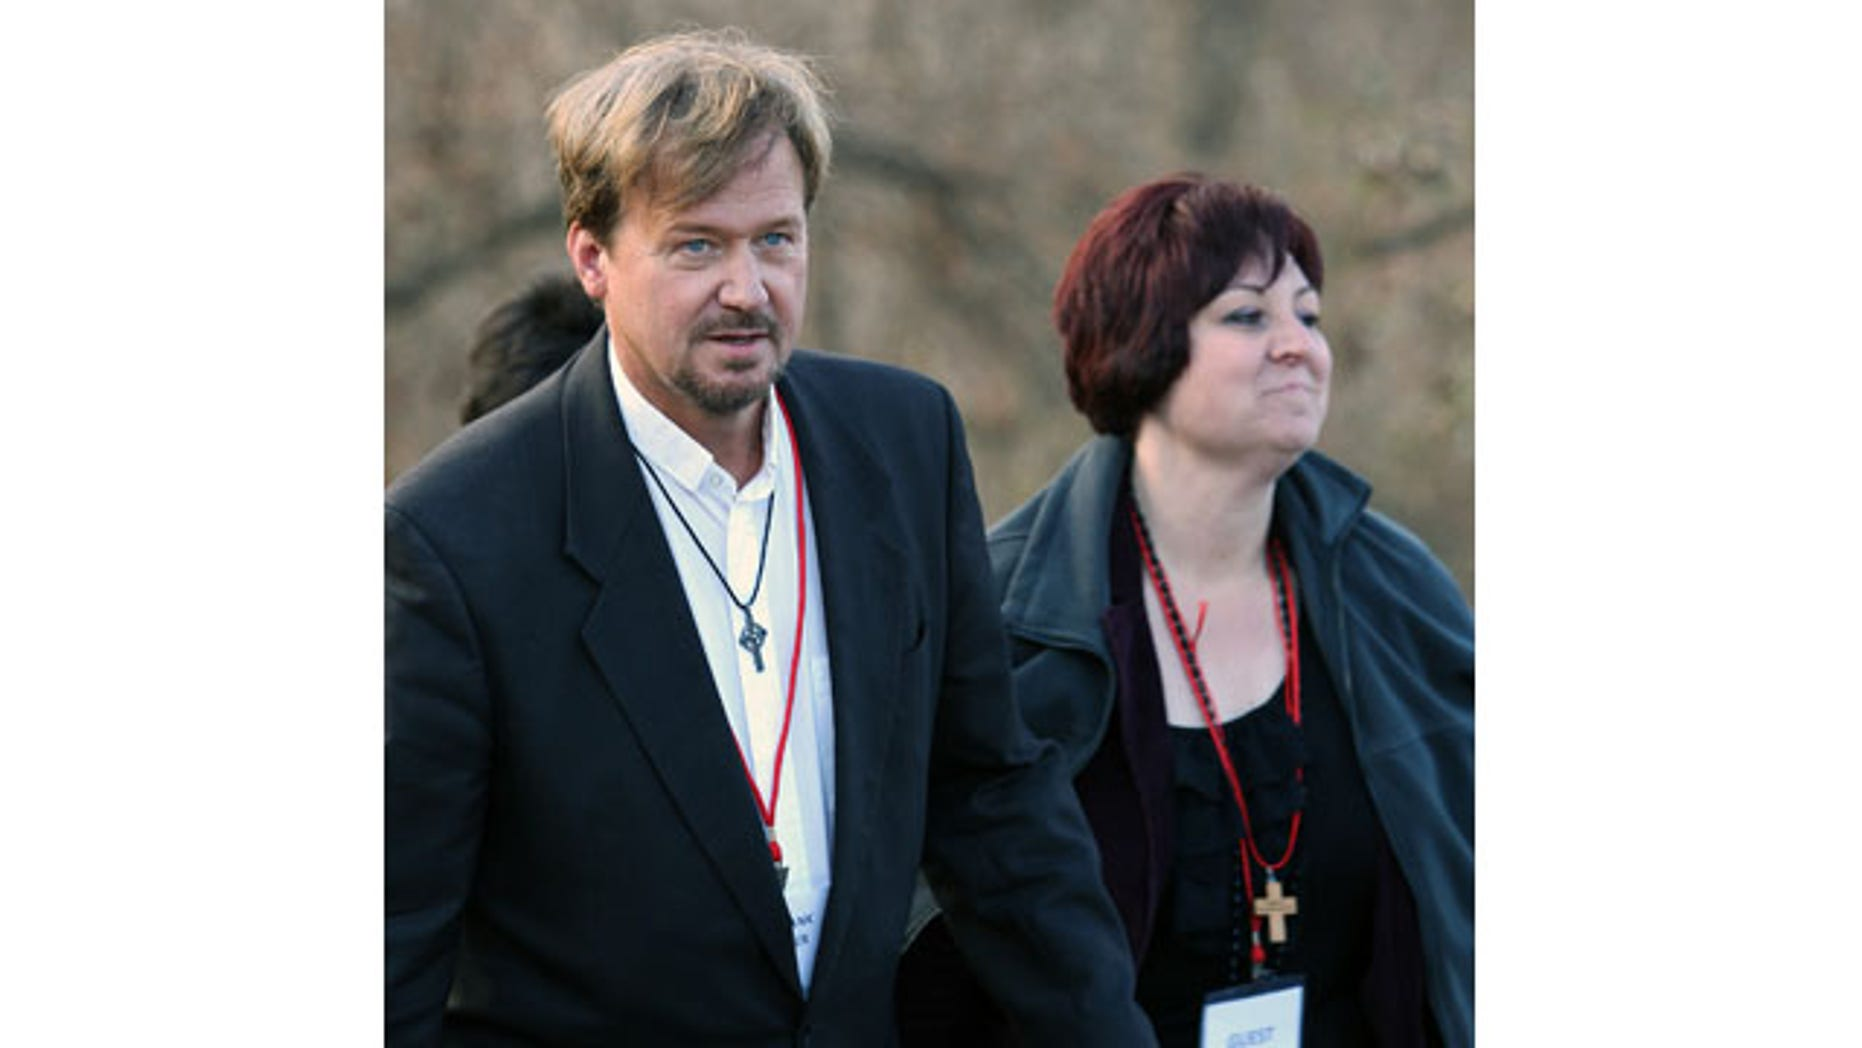 November 19. 2013: The Rev. Frank Schaefer, left, of Lebanon Pa., and his Pastoral Assistant Clydette Overturf, comes back to the trial after a lunch break at Camp Innabah, a United Methodist retreat, in Spring City Pa. A jury of his pastoral peers convicted Schaefer on Monday of breaking his vows by officiating his gay sons' Massachusetts wedding in 2007. (AP Photo)